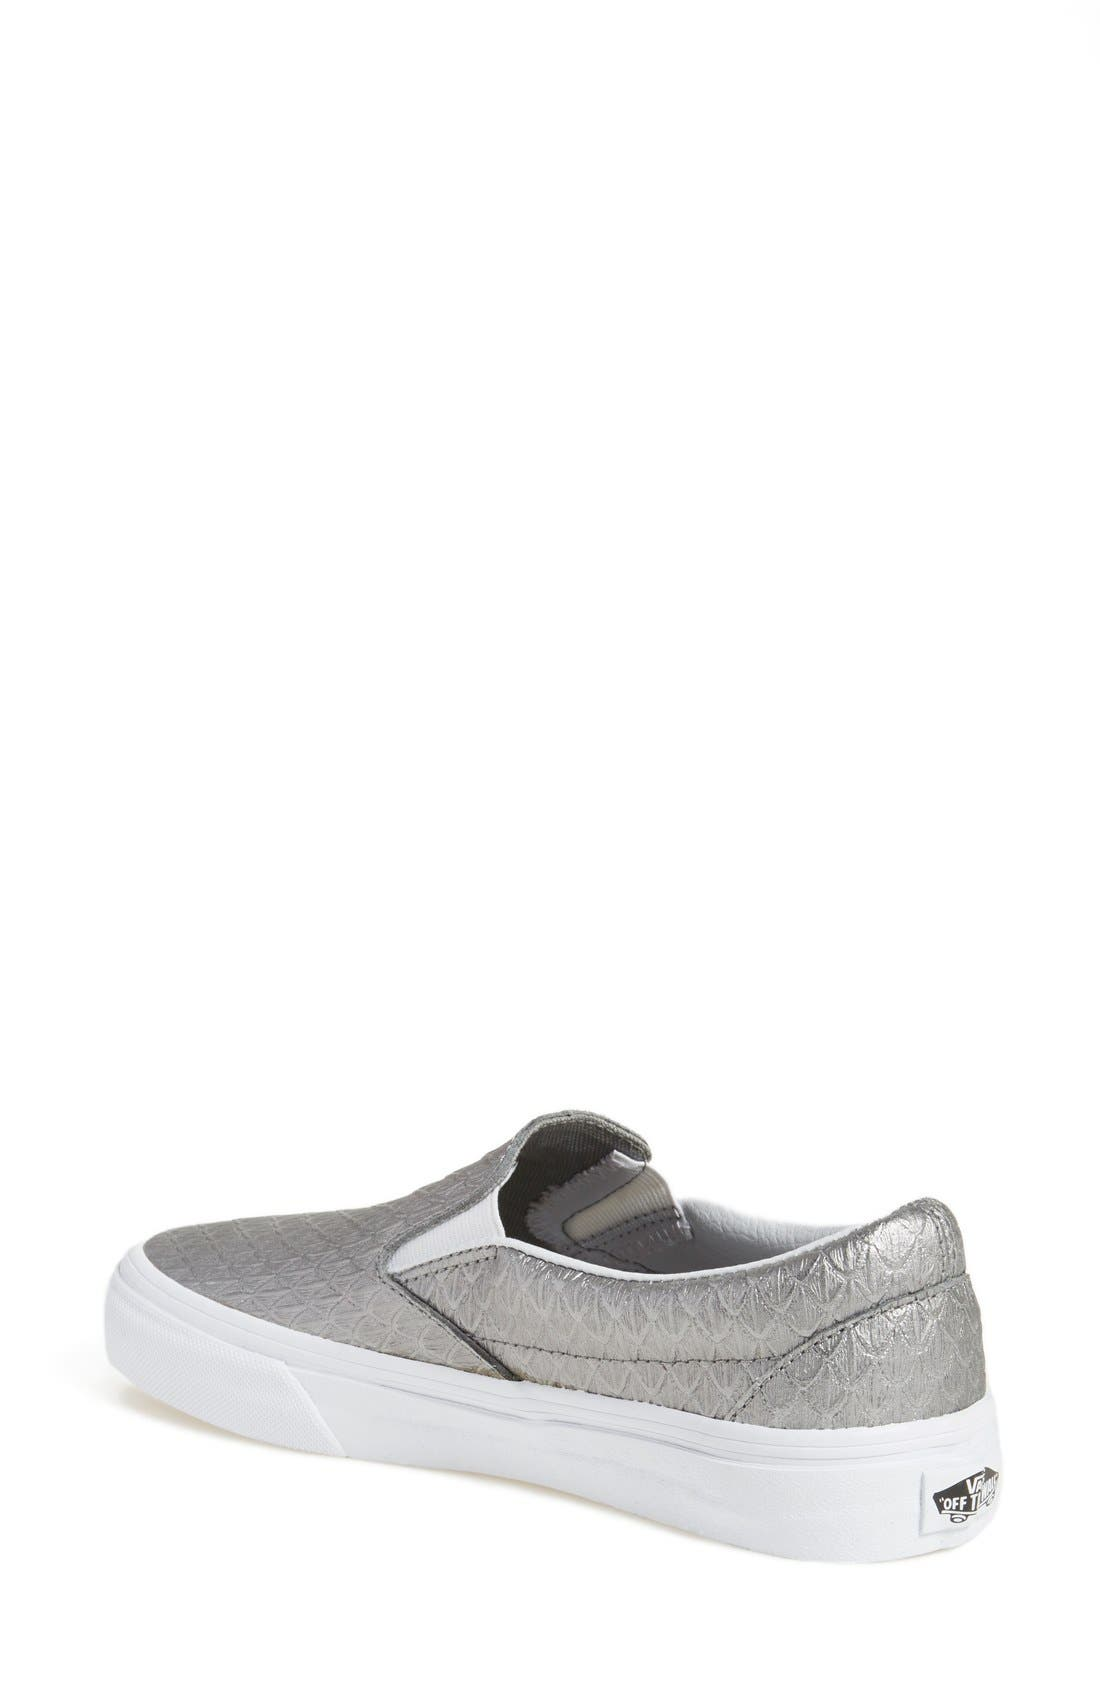 Alternate Image 2  - Vans Classic Slip-On Sneaker (Women)